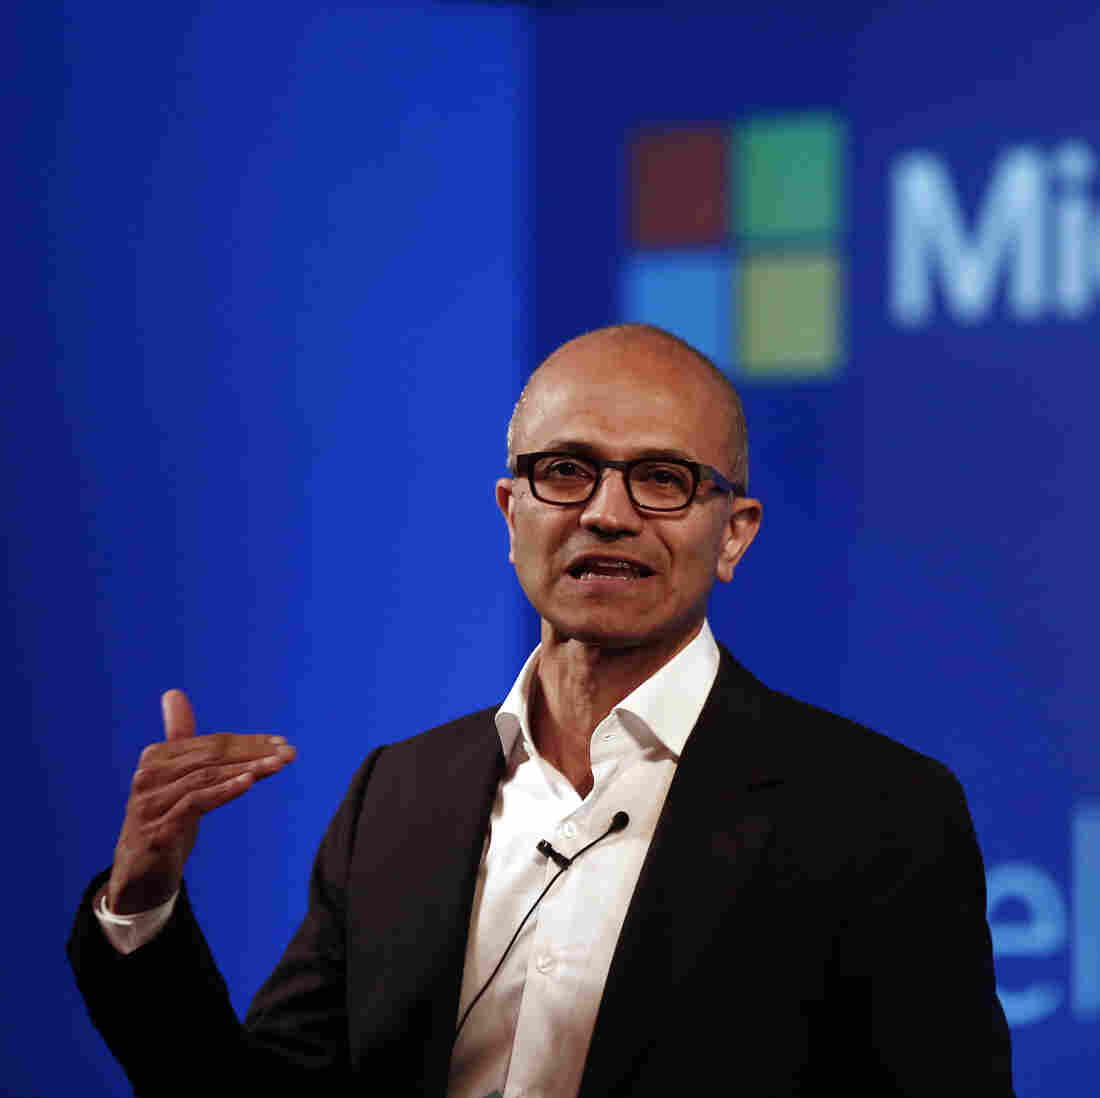 Microsoft CEO Nadella's Remarks Add To Tech's Sexism Problem